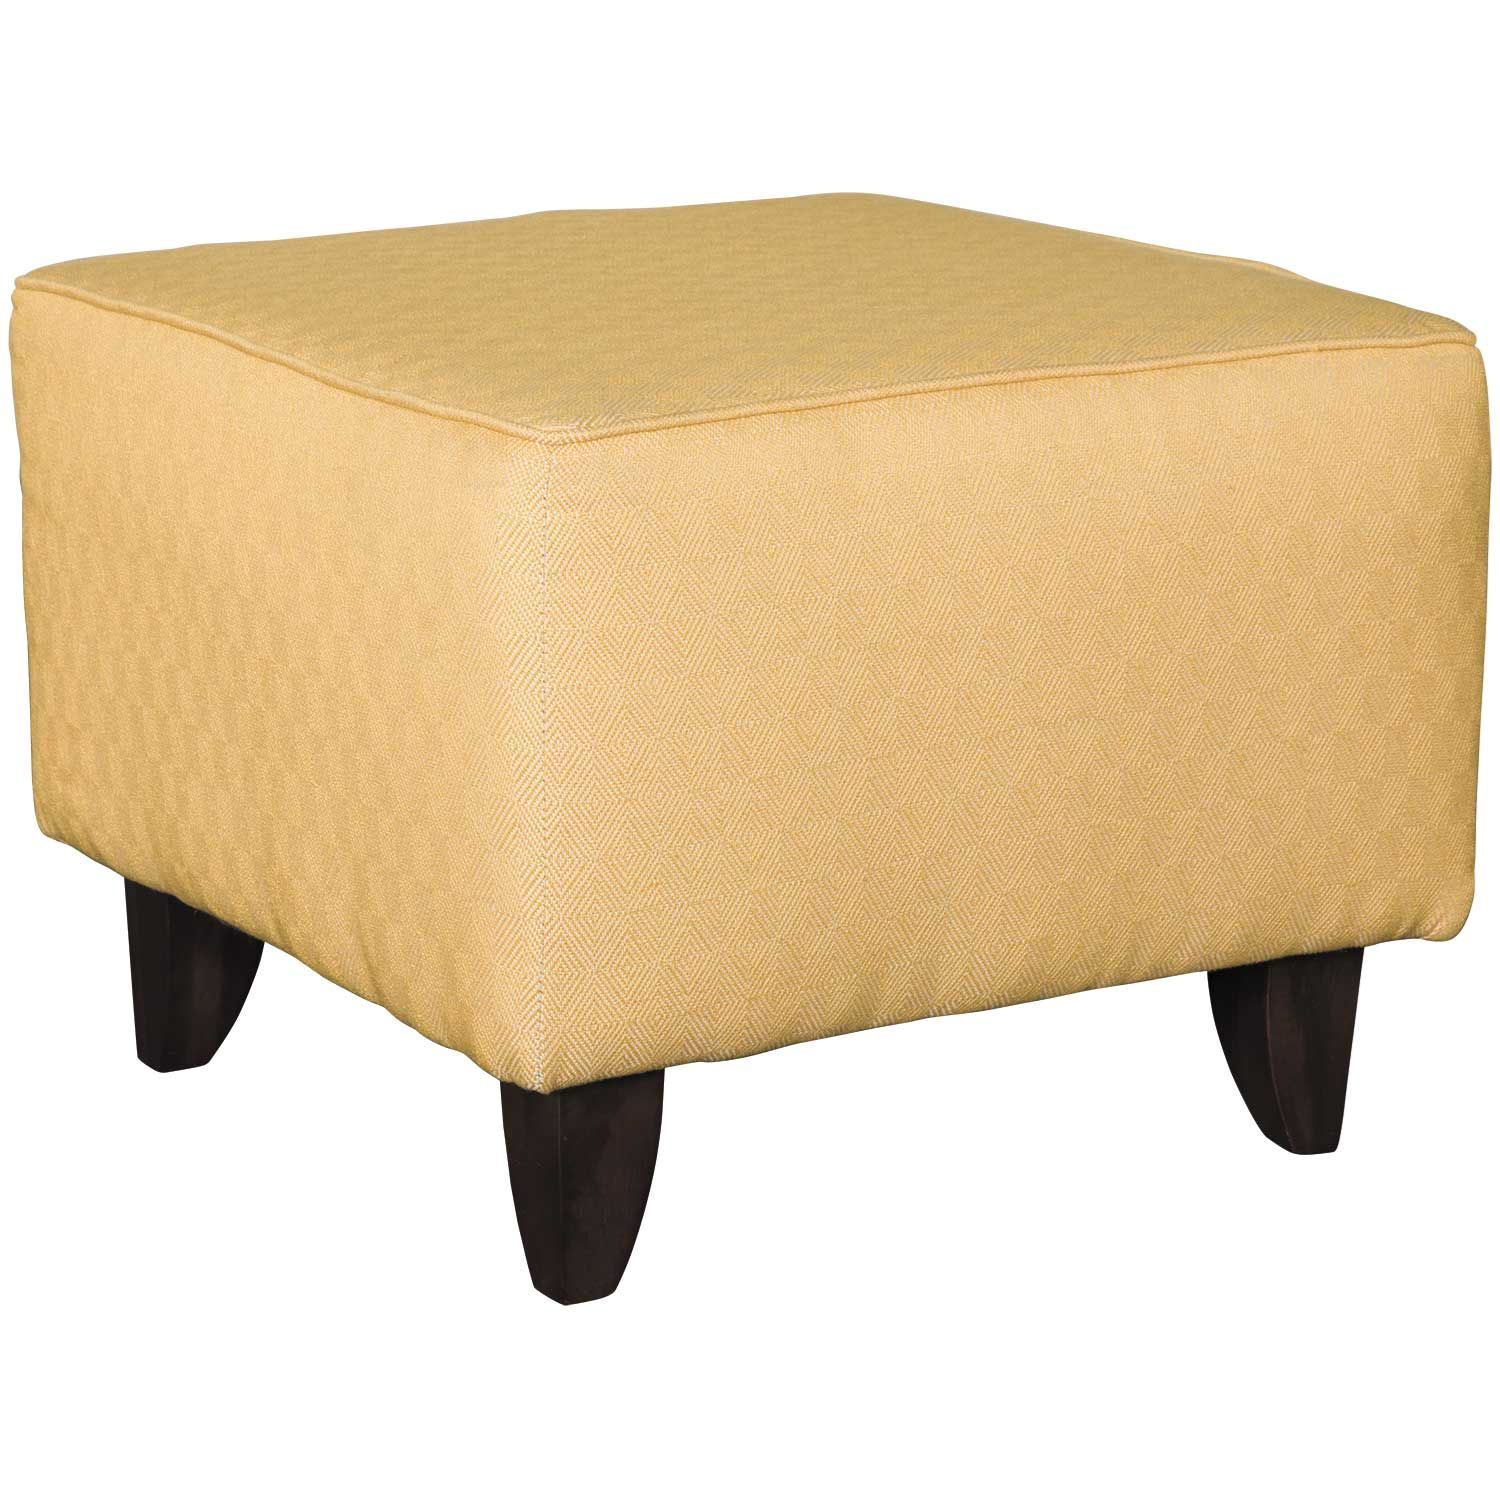 Brilliant Sydney Gold Accent Ottoman 1555 747 Washington Furniture Gmtry Best Dining Table And Chair Ideas Images Gmtryco